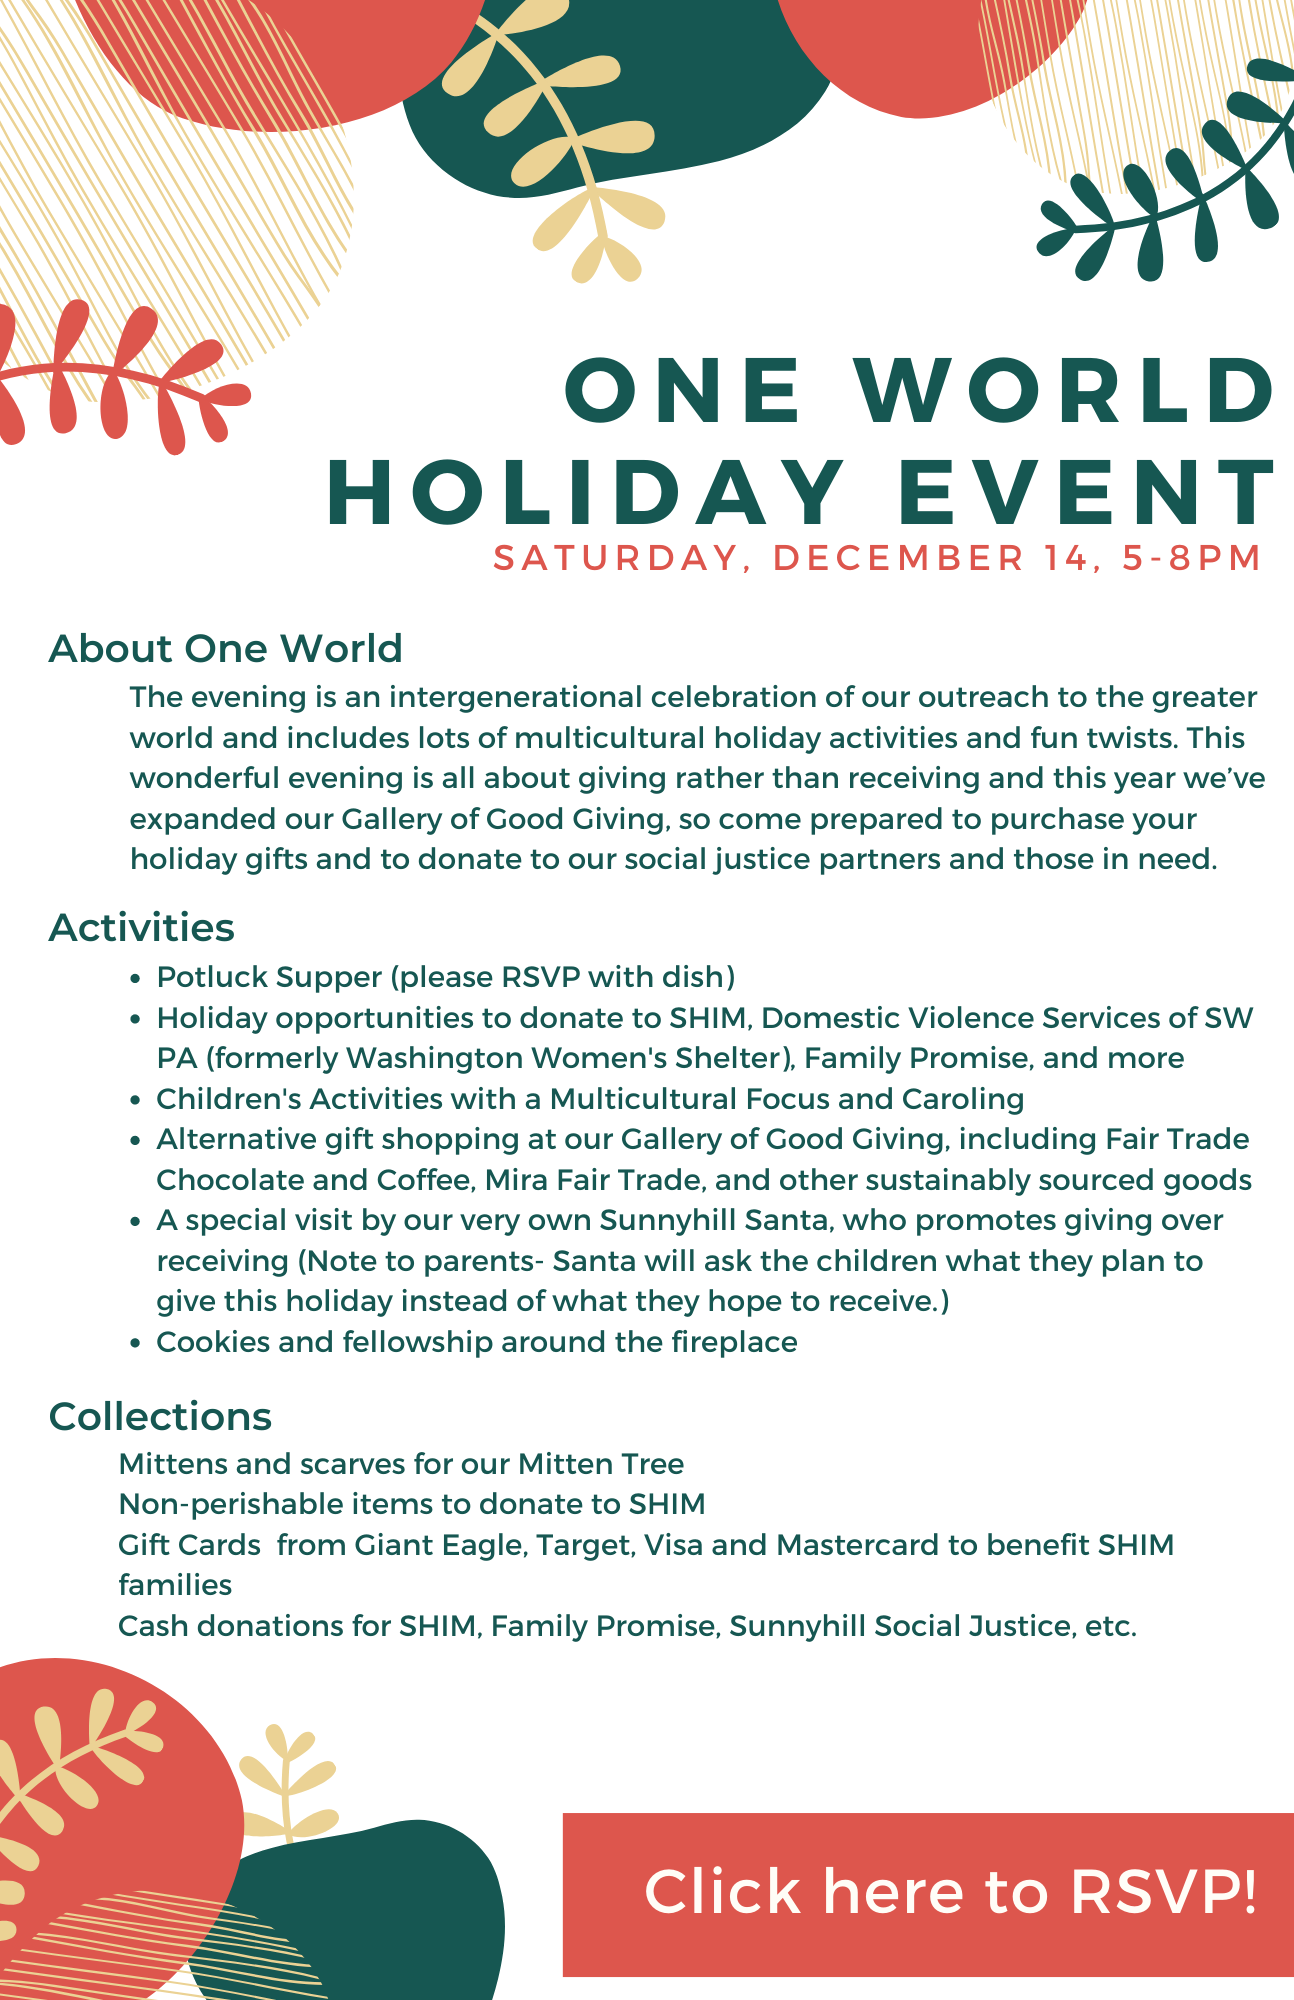 One World Holiday Event December 14 5-8pm